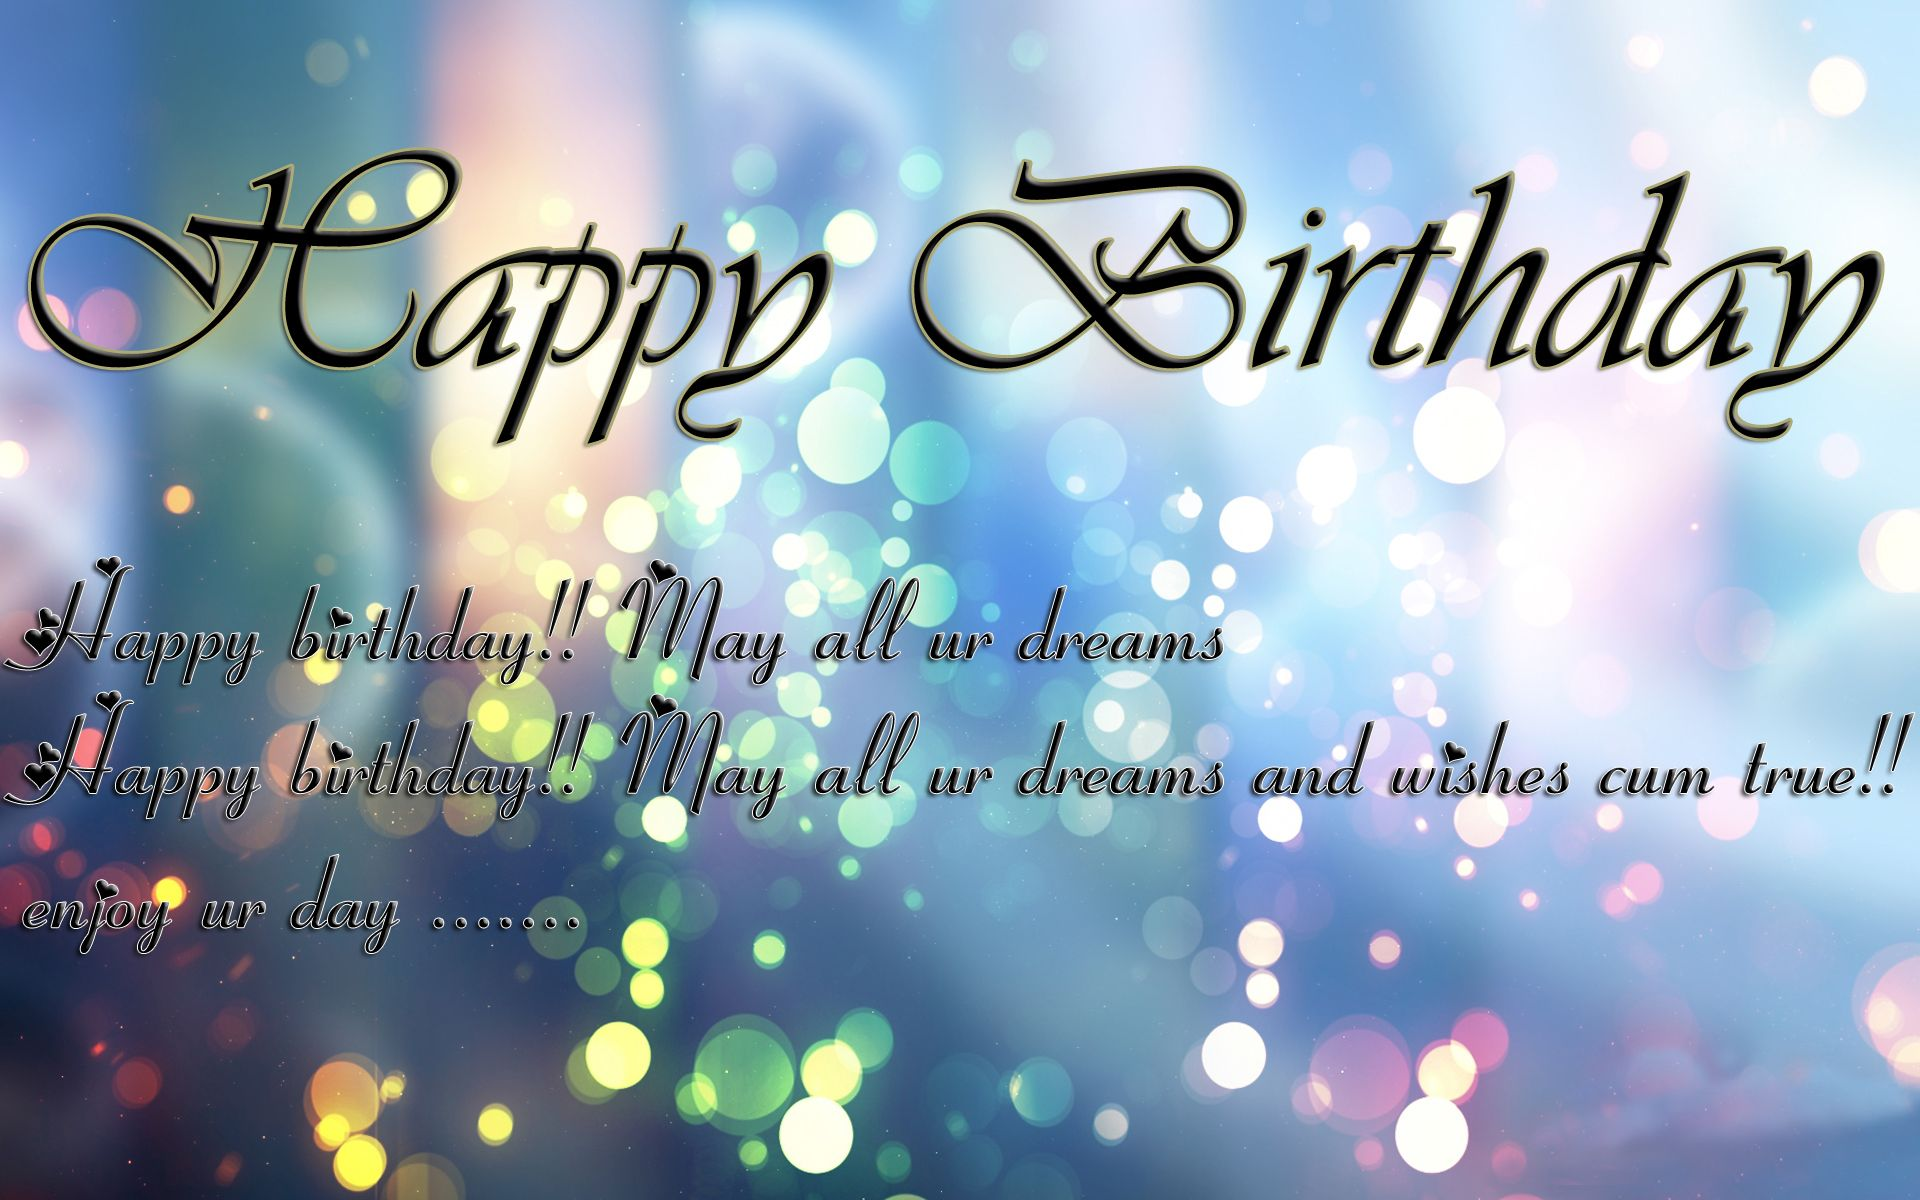 Nexquisite Entertainment would like to wish you happy birthday – Different Birthday Greetings